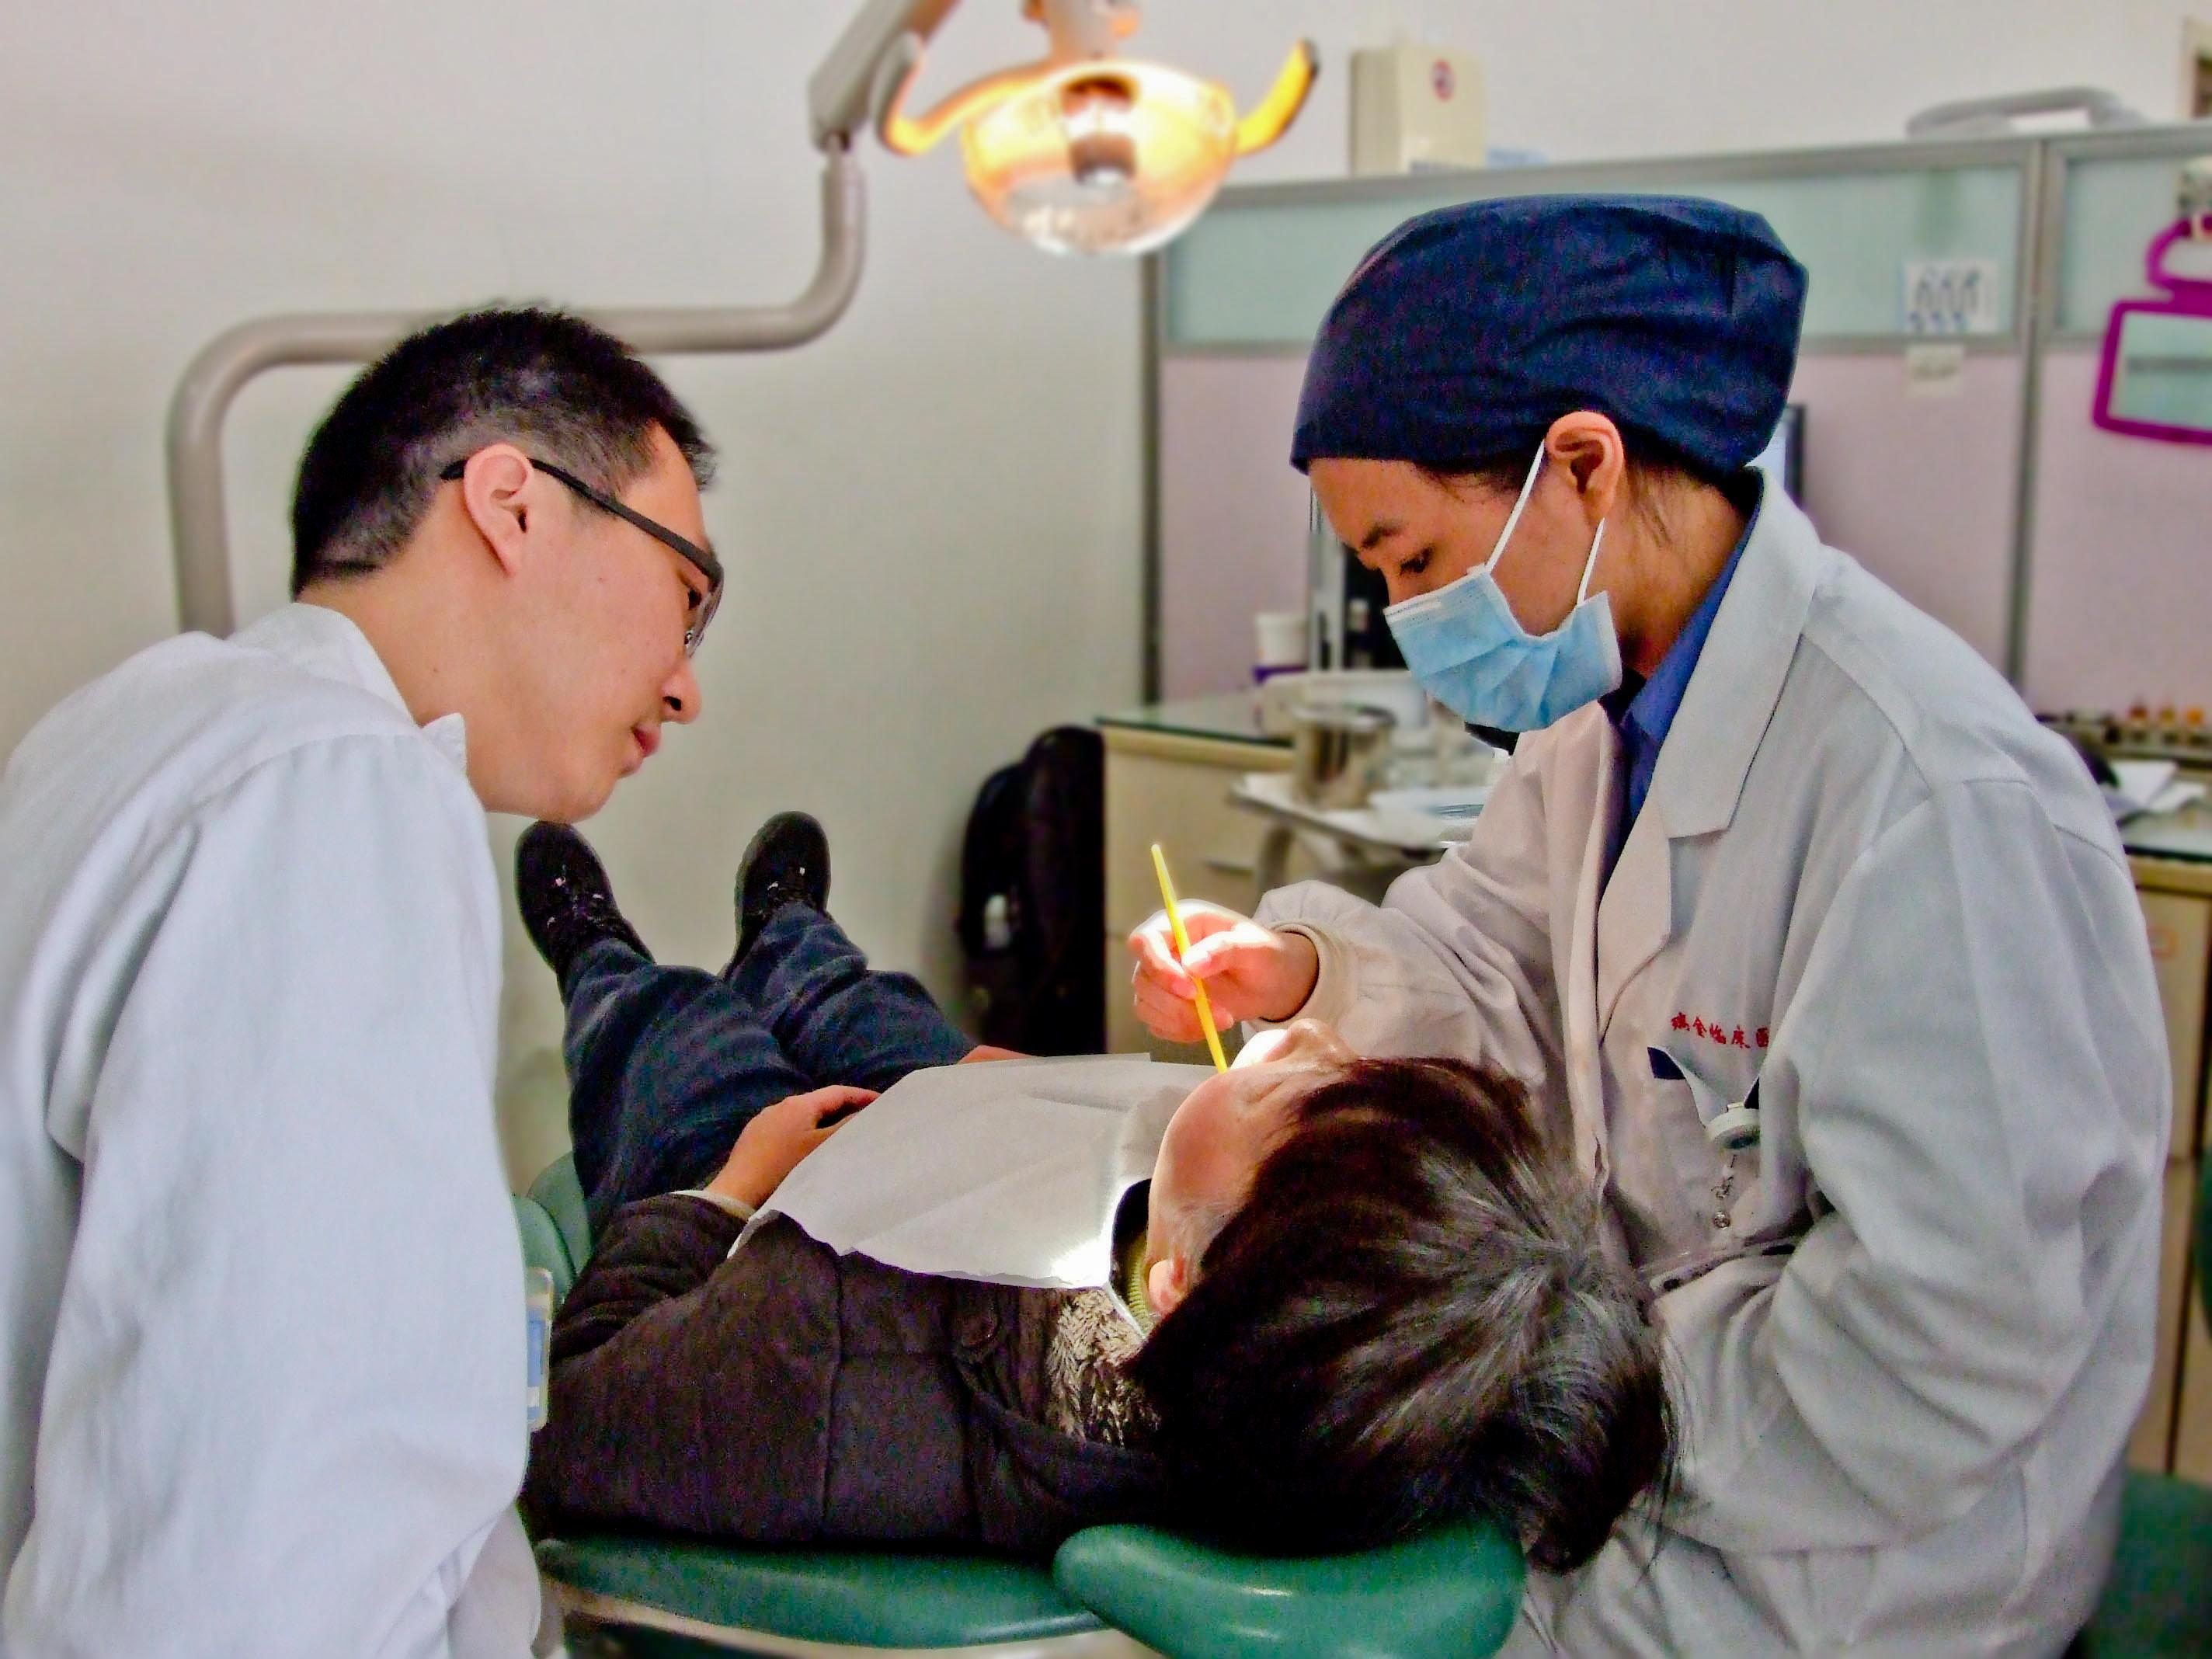 Medical interns examine a young boys mouth at a Dental workshop during their Medicine placement in China.